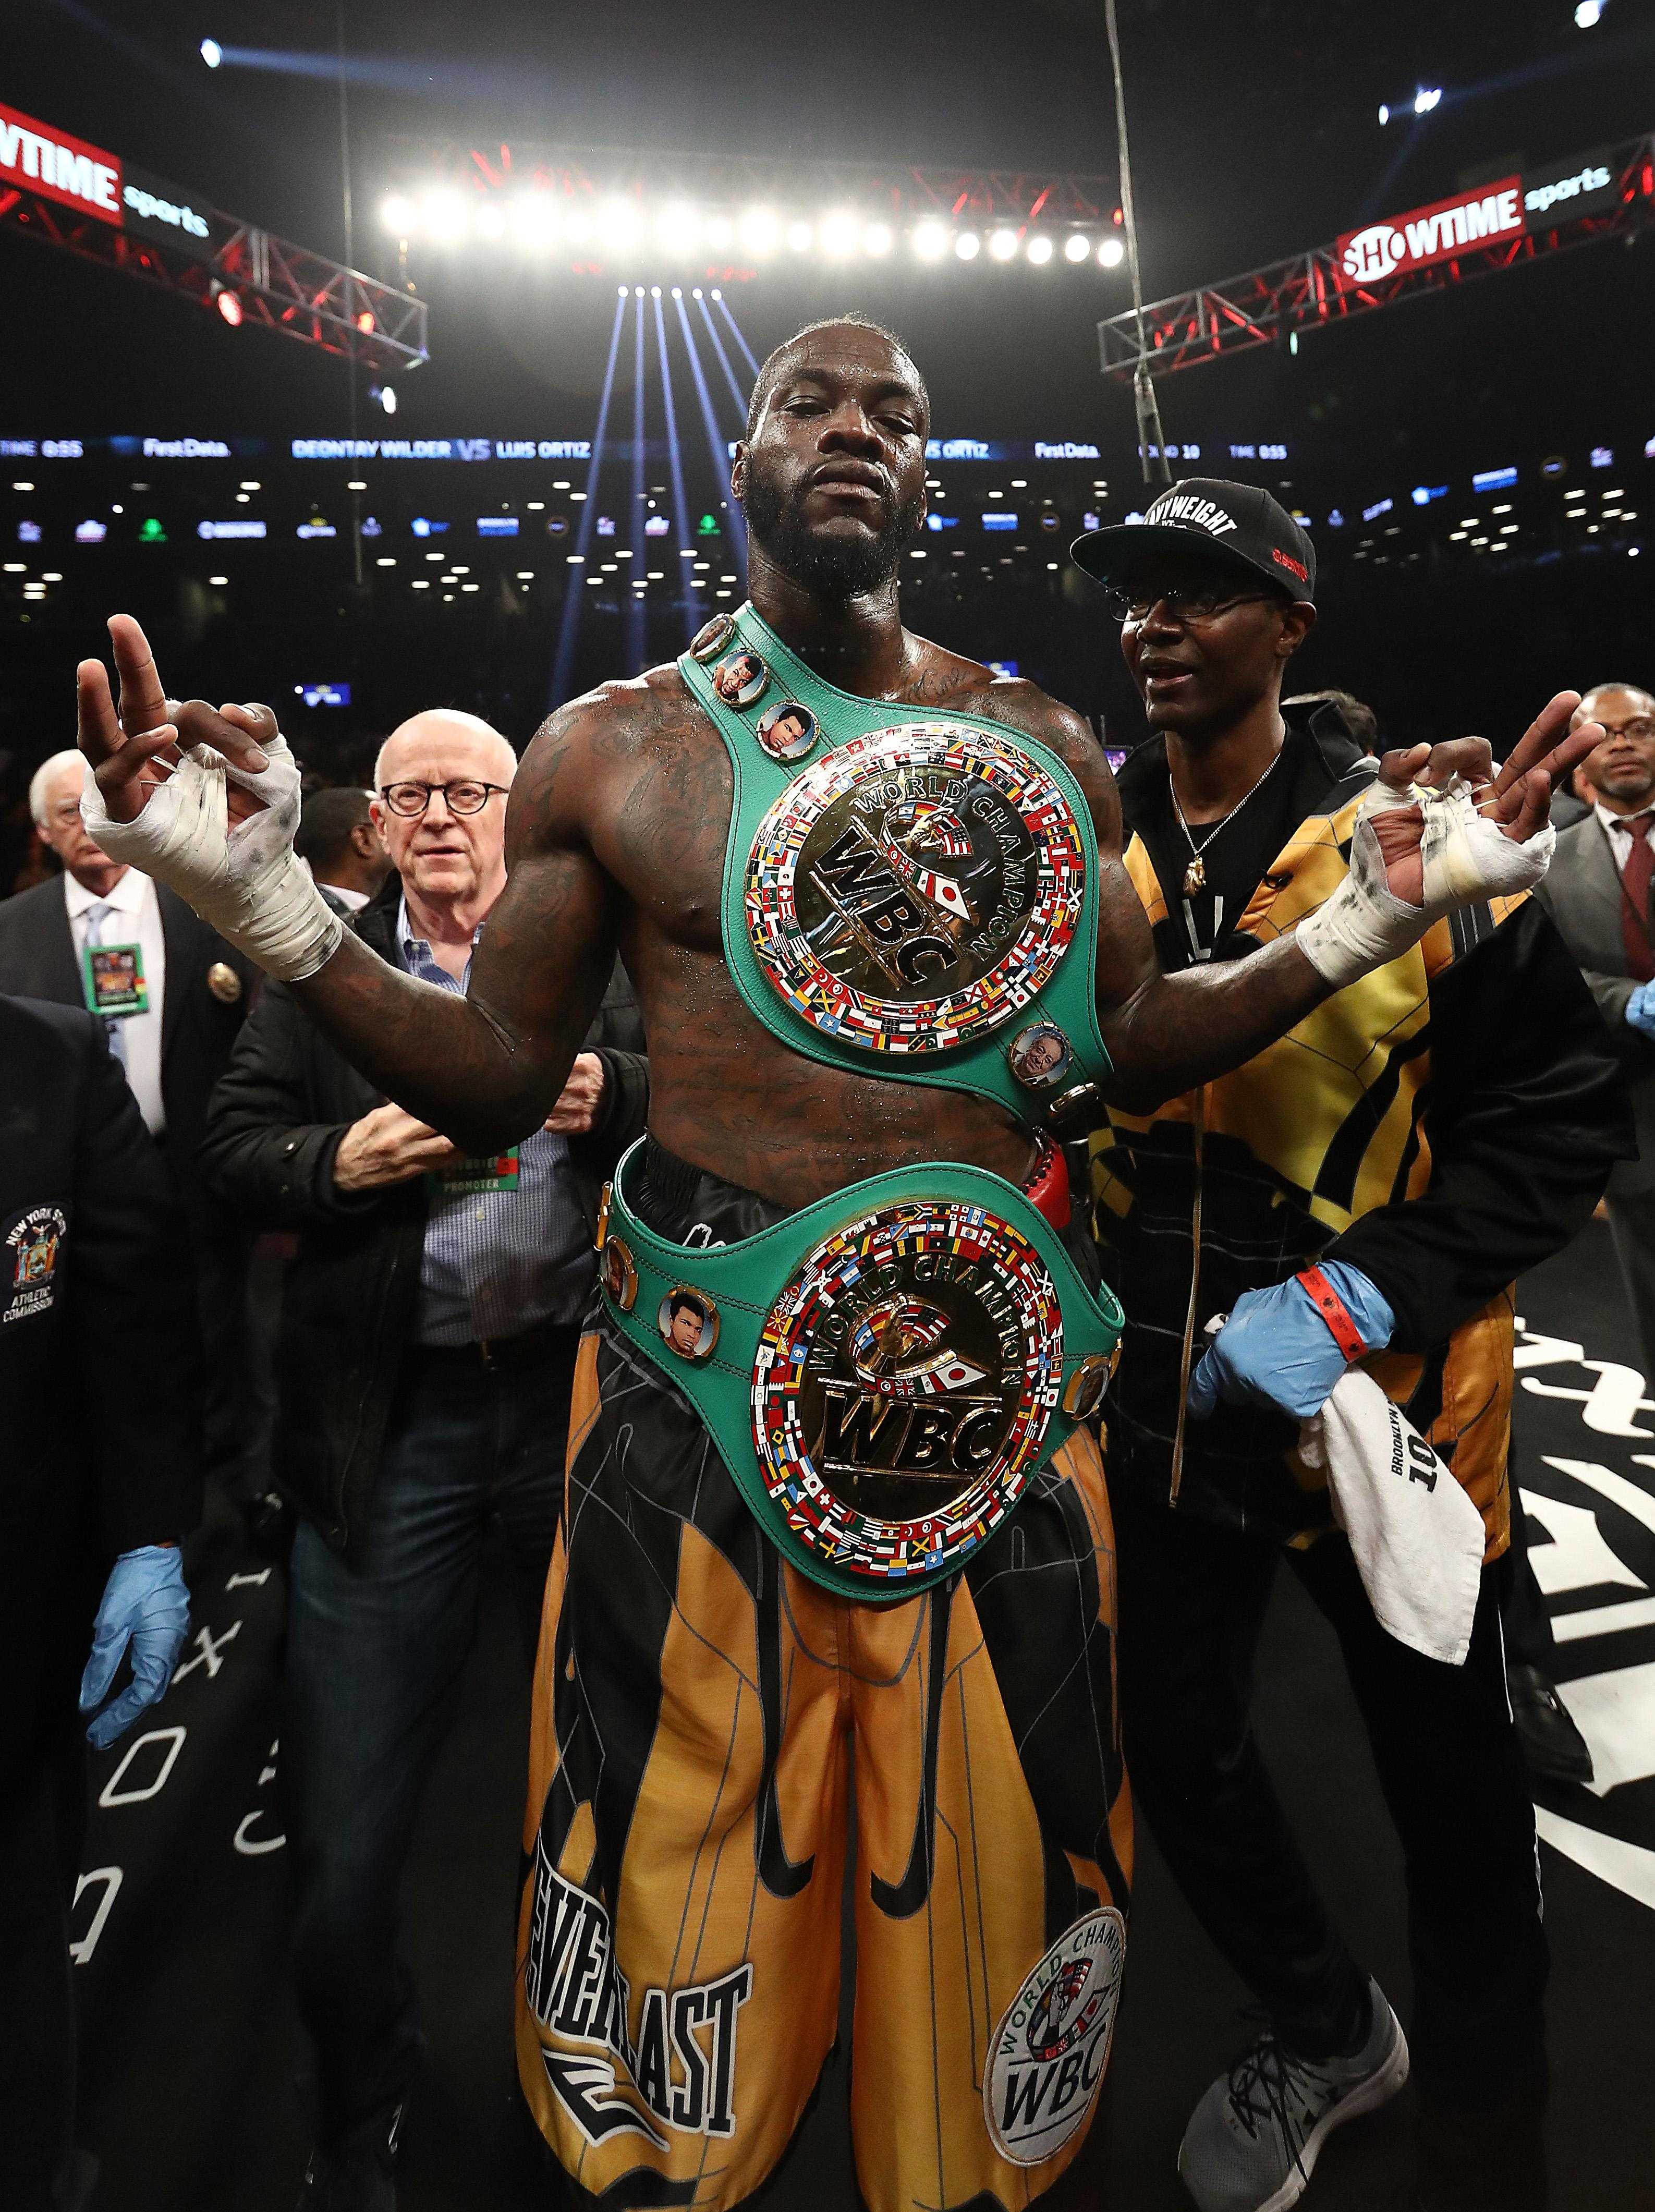 Deontay Wilder and Anthony Joshua are both unbeaten champions who boast a fearsome KO record